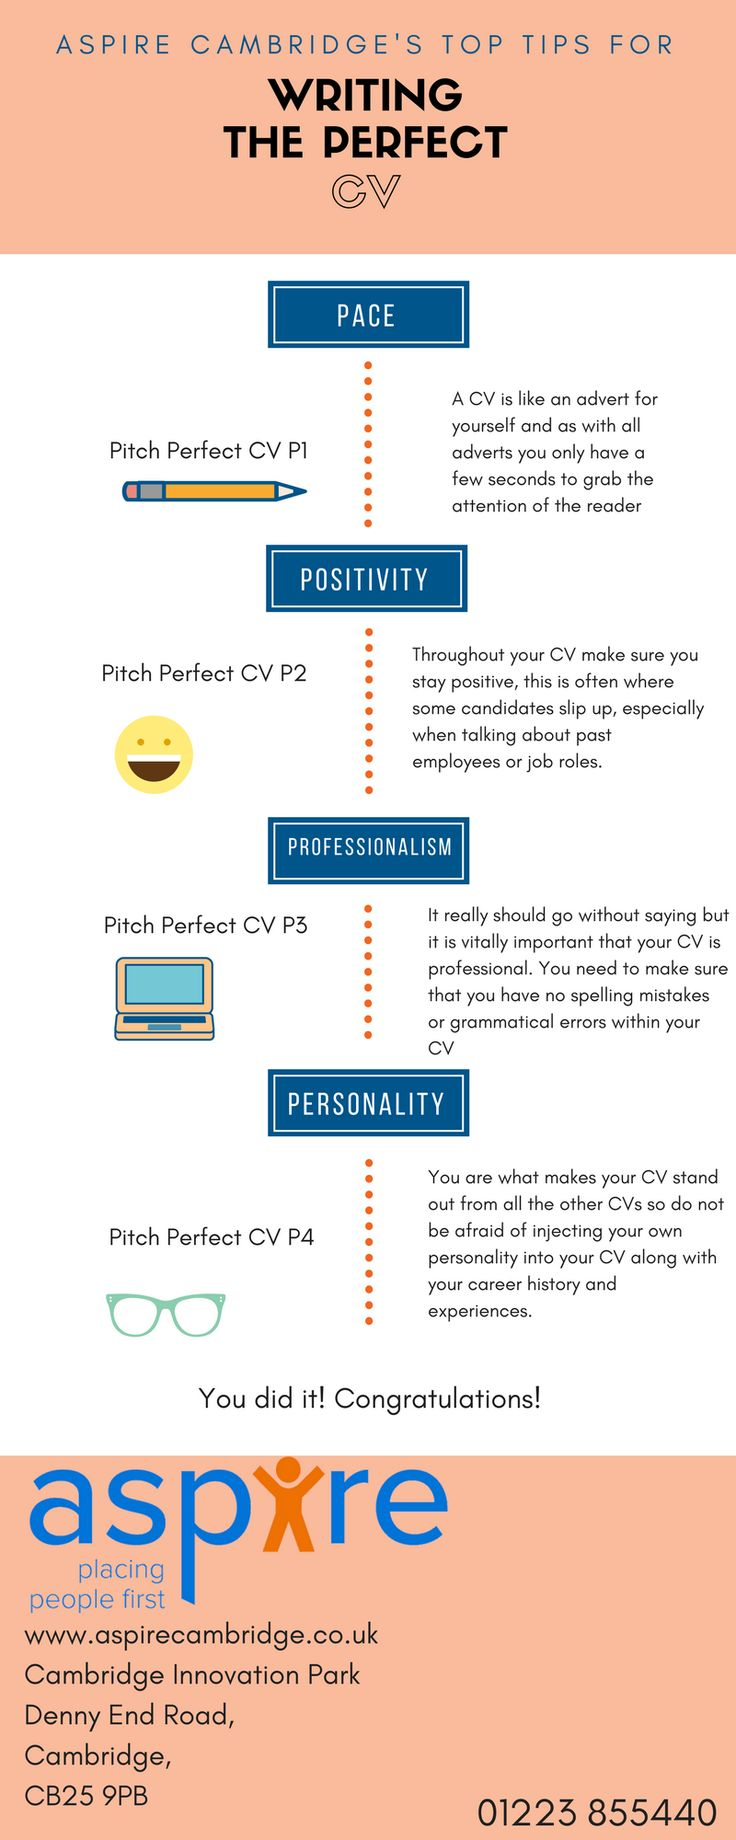 Writing the Perfect CV >> https://www.aspirecambridge.co.uk/blog/2017/06/writing-the-pitch-perfect-cv/